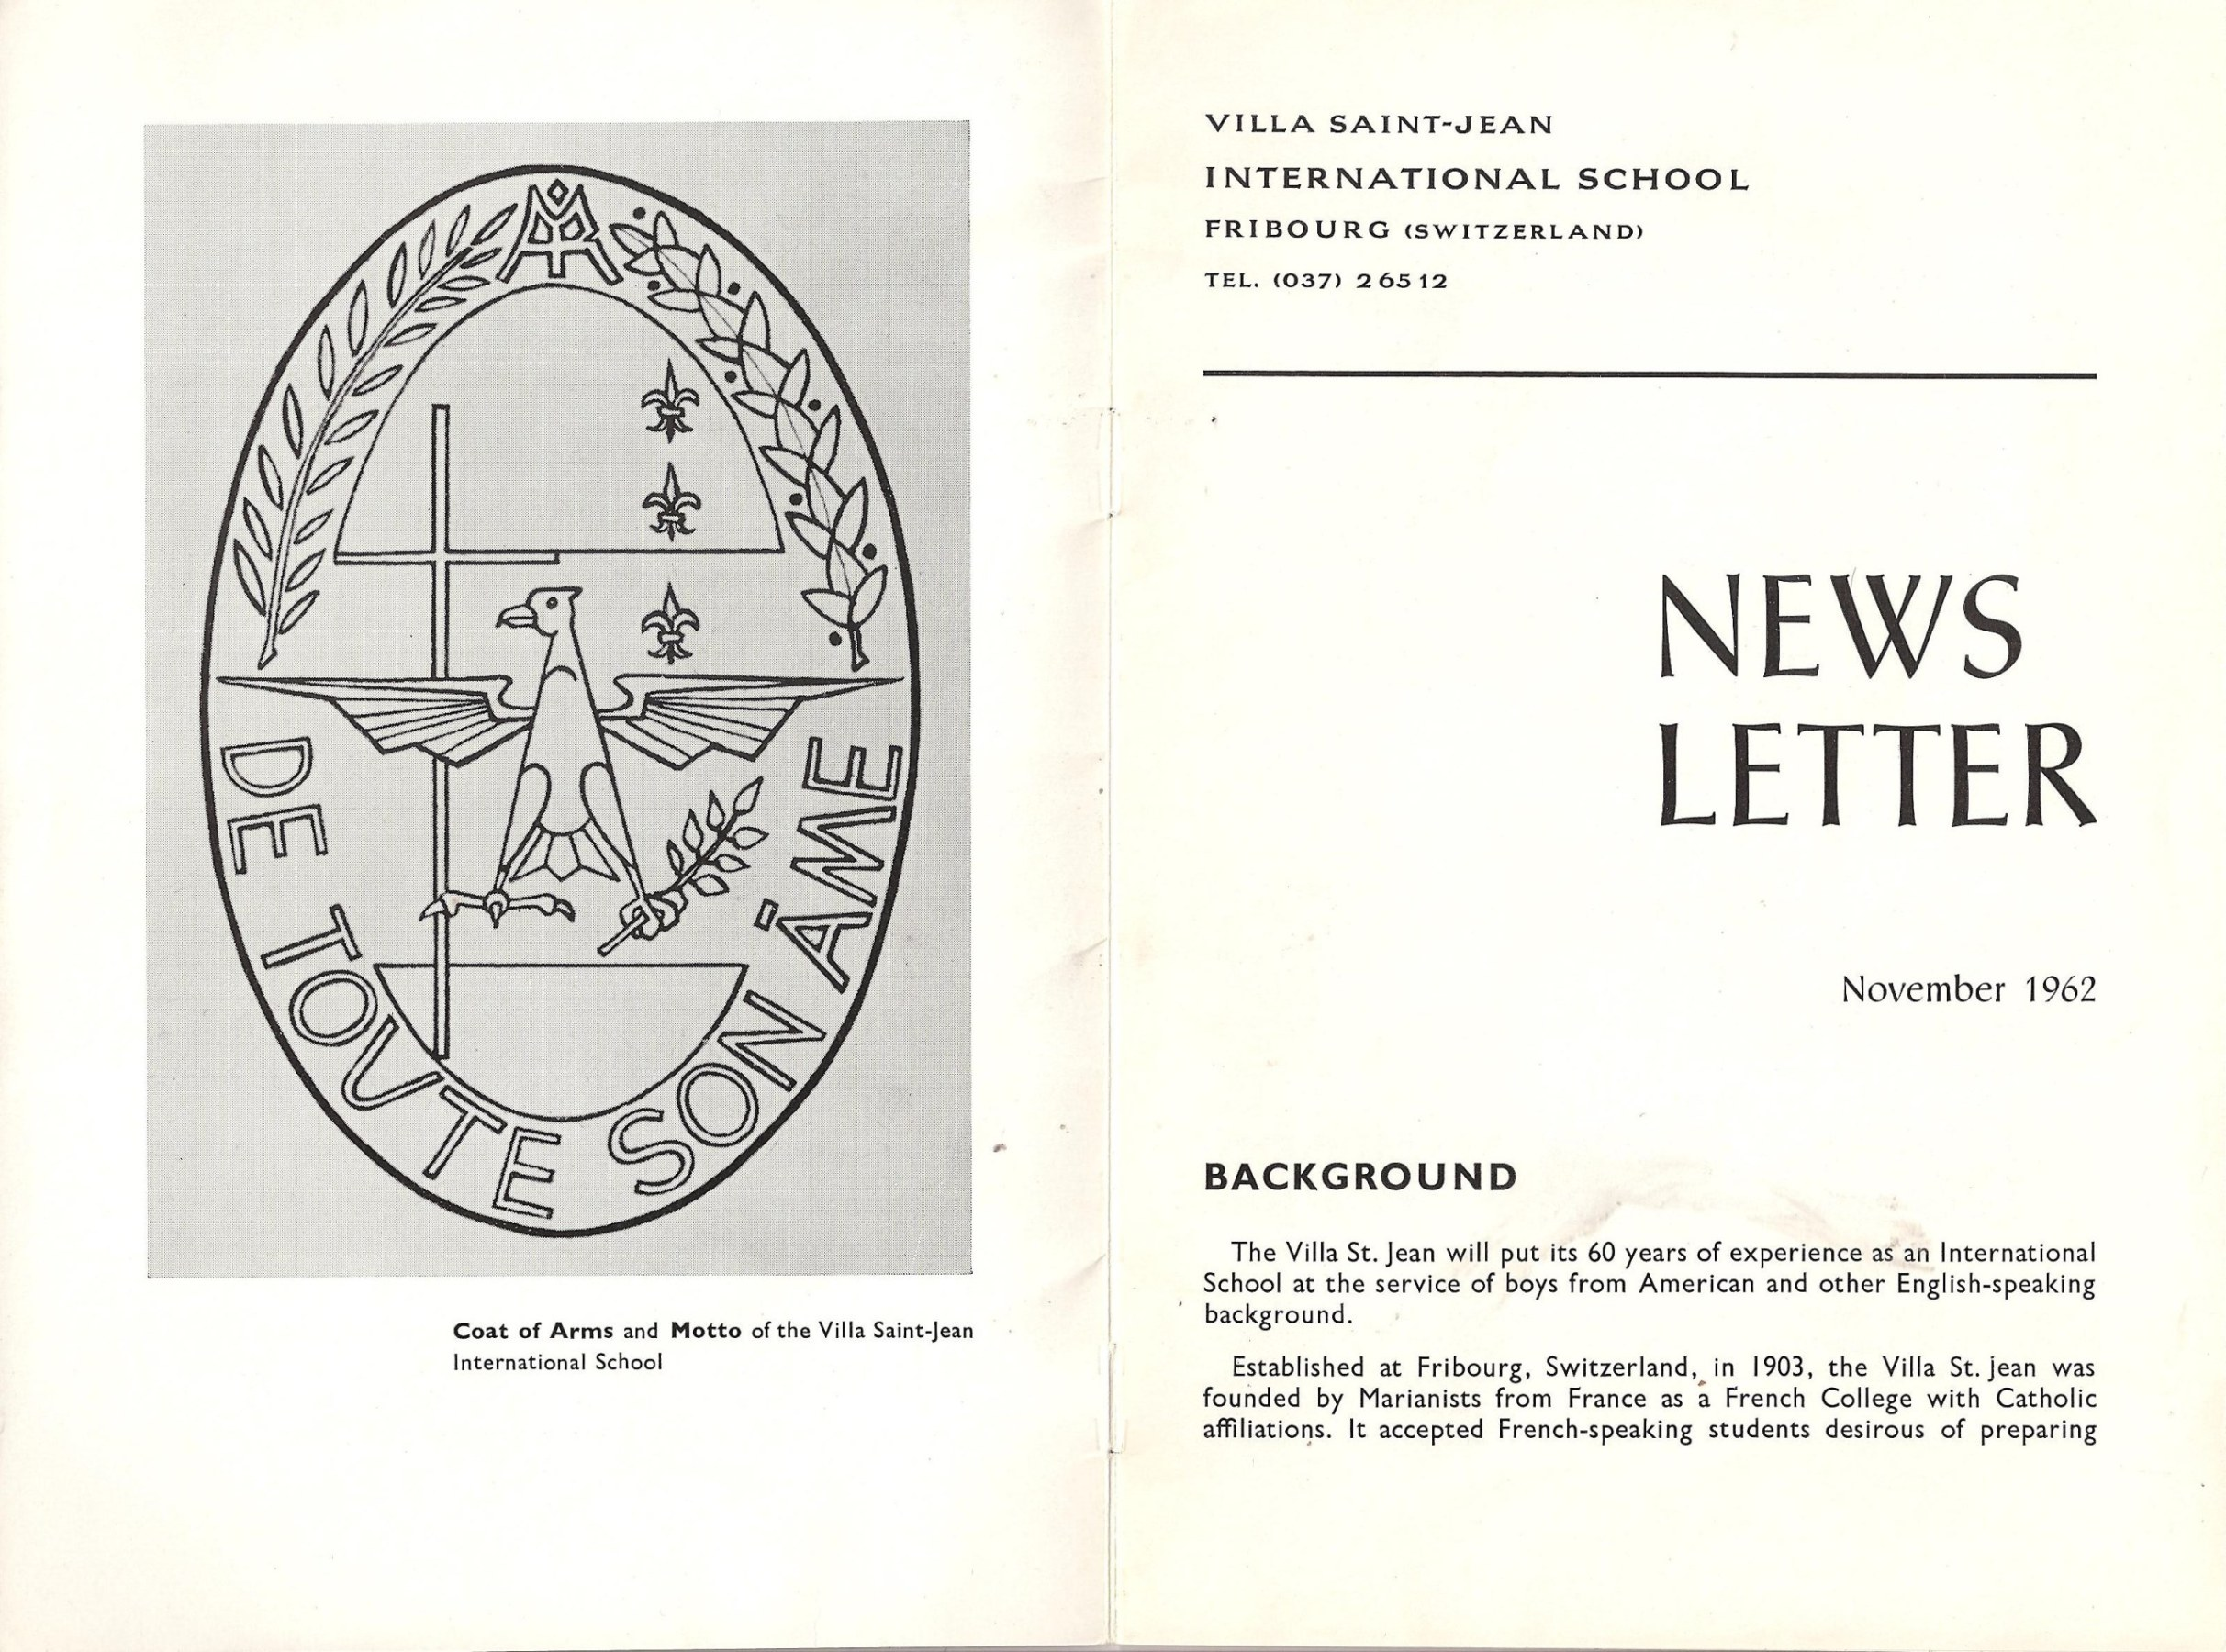 Image: Pages 1 and 2 of Villa Saint Jean November 1962 NEWSLETTER